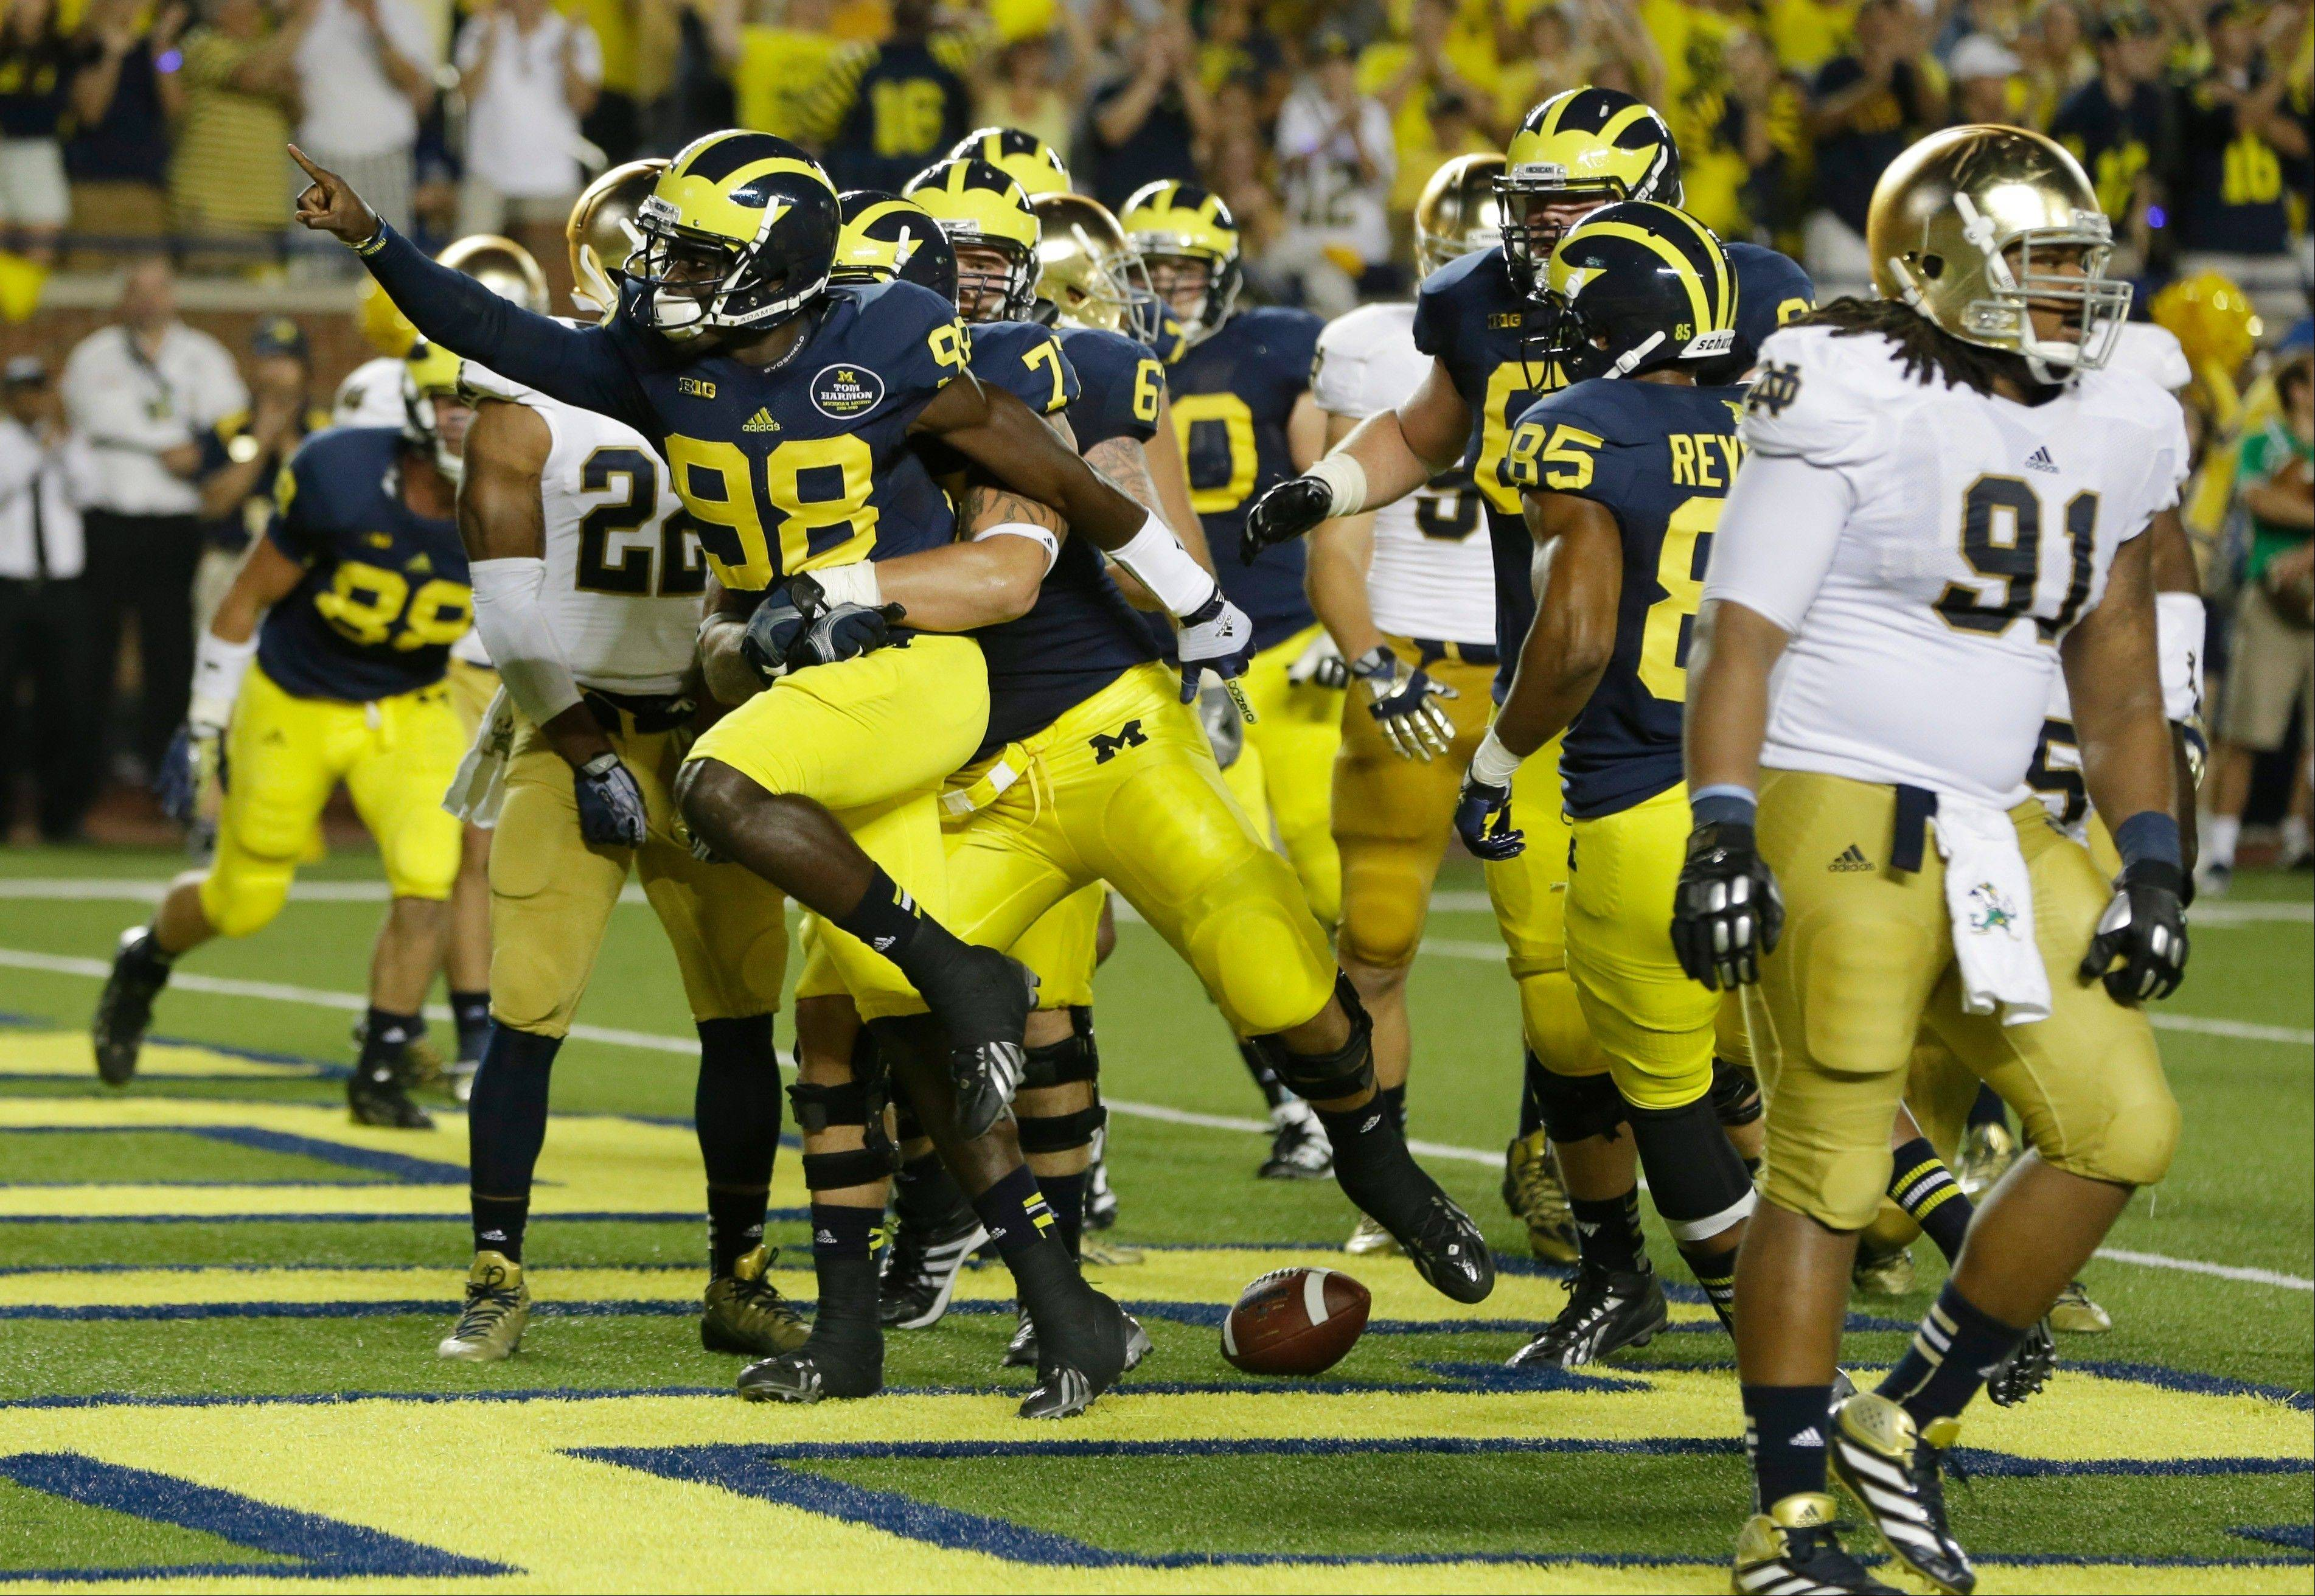 Michigan quarterback Devin Gardner (98) celebrates his touchdown during the second quarter of Saturday night�s against Notre Dame in Ann Arbor, Mich.